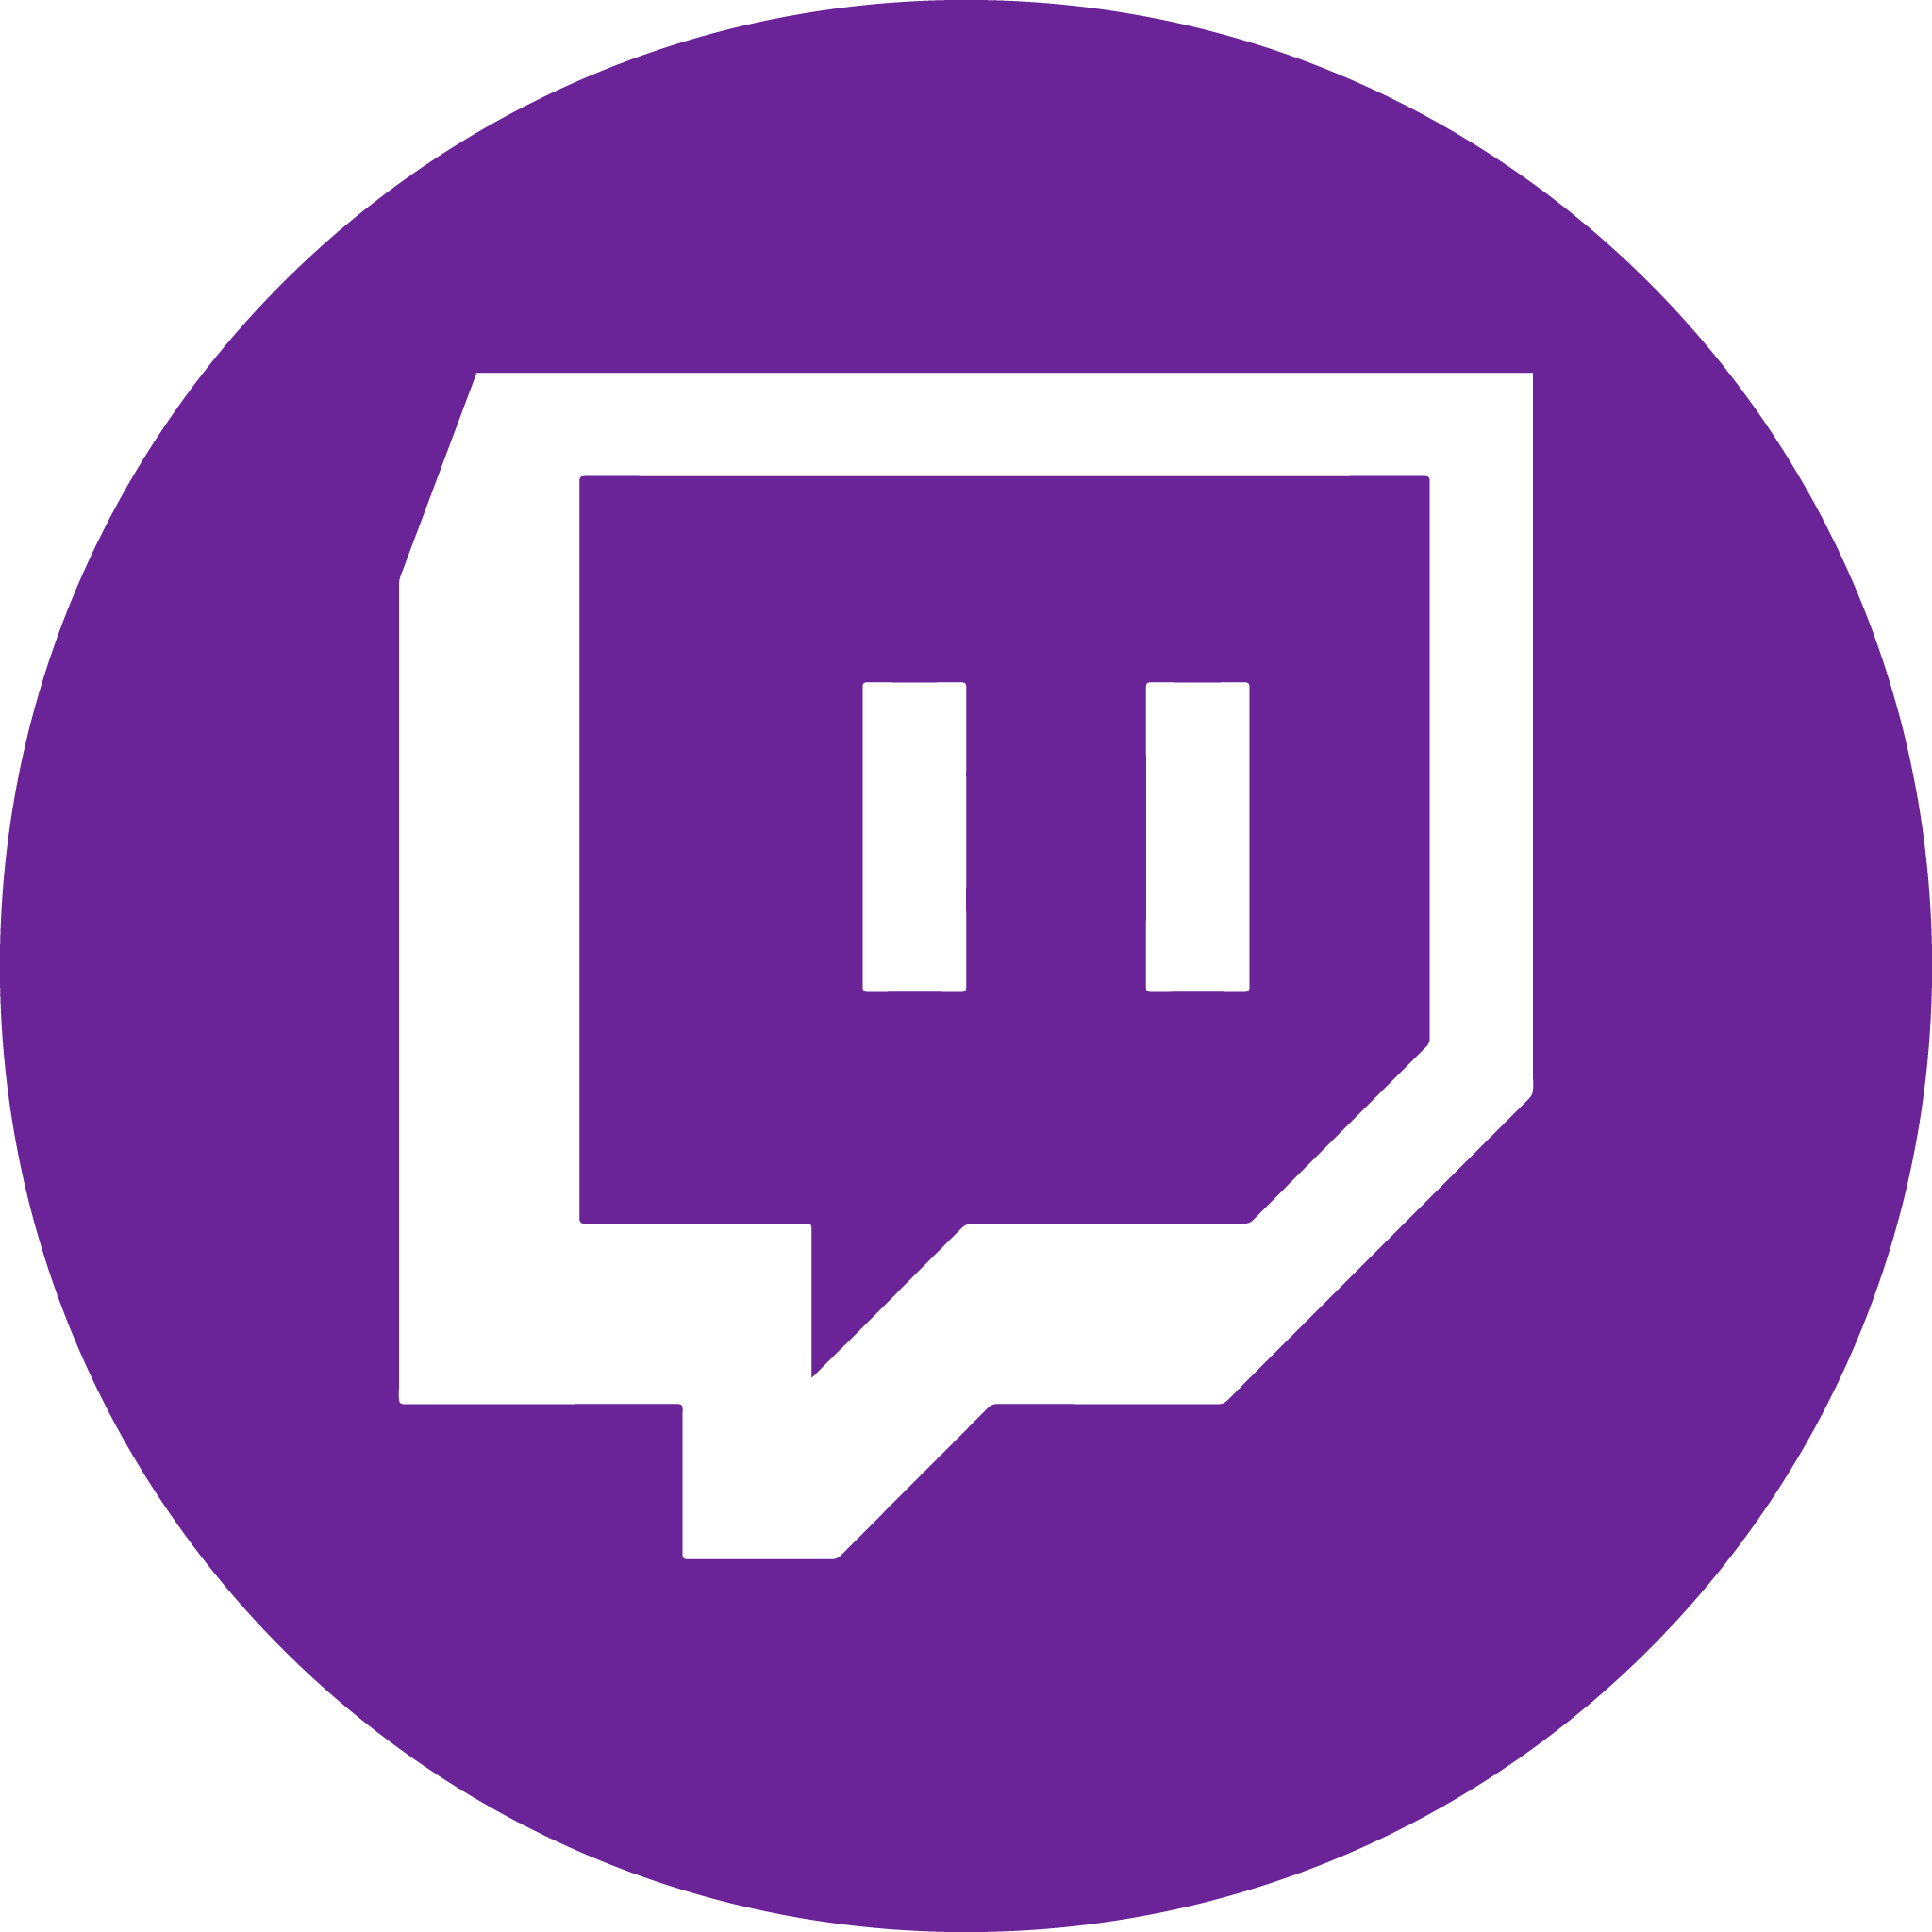 twitch.tv/5Ding